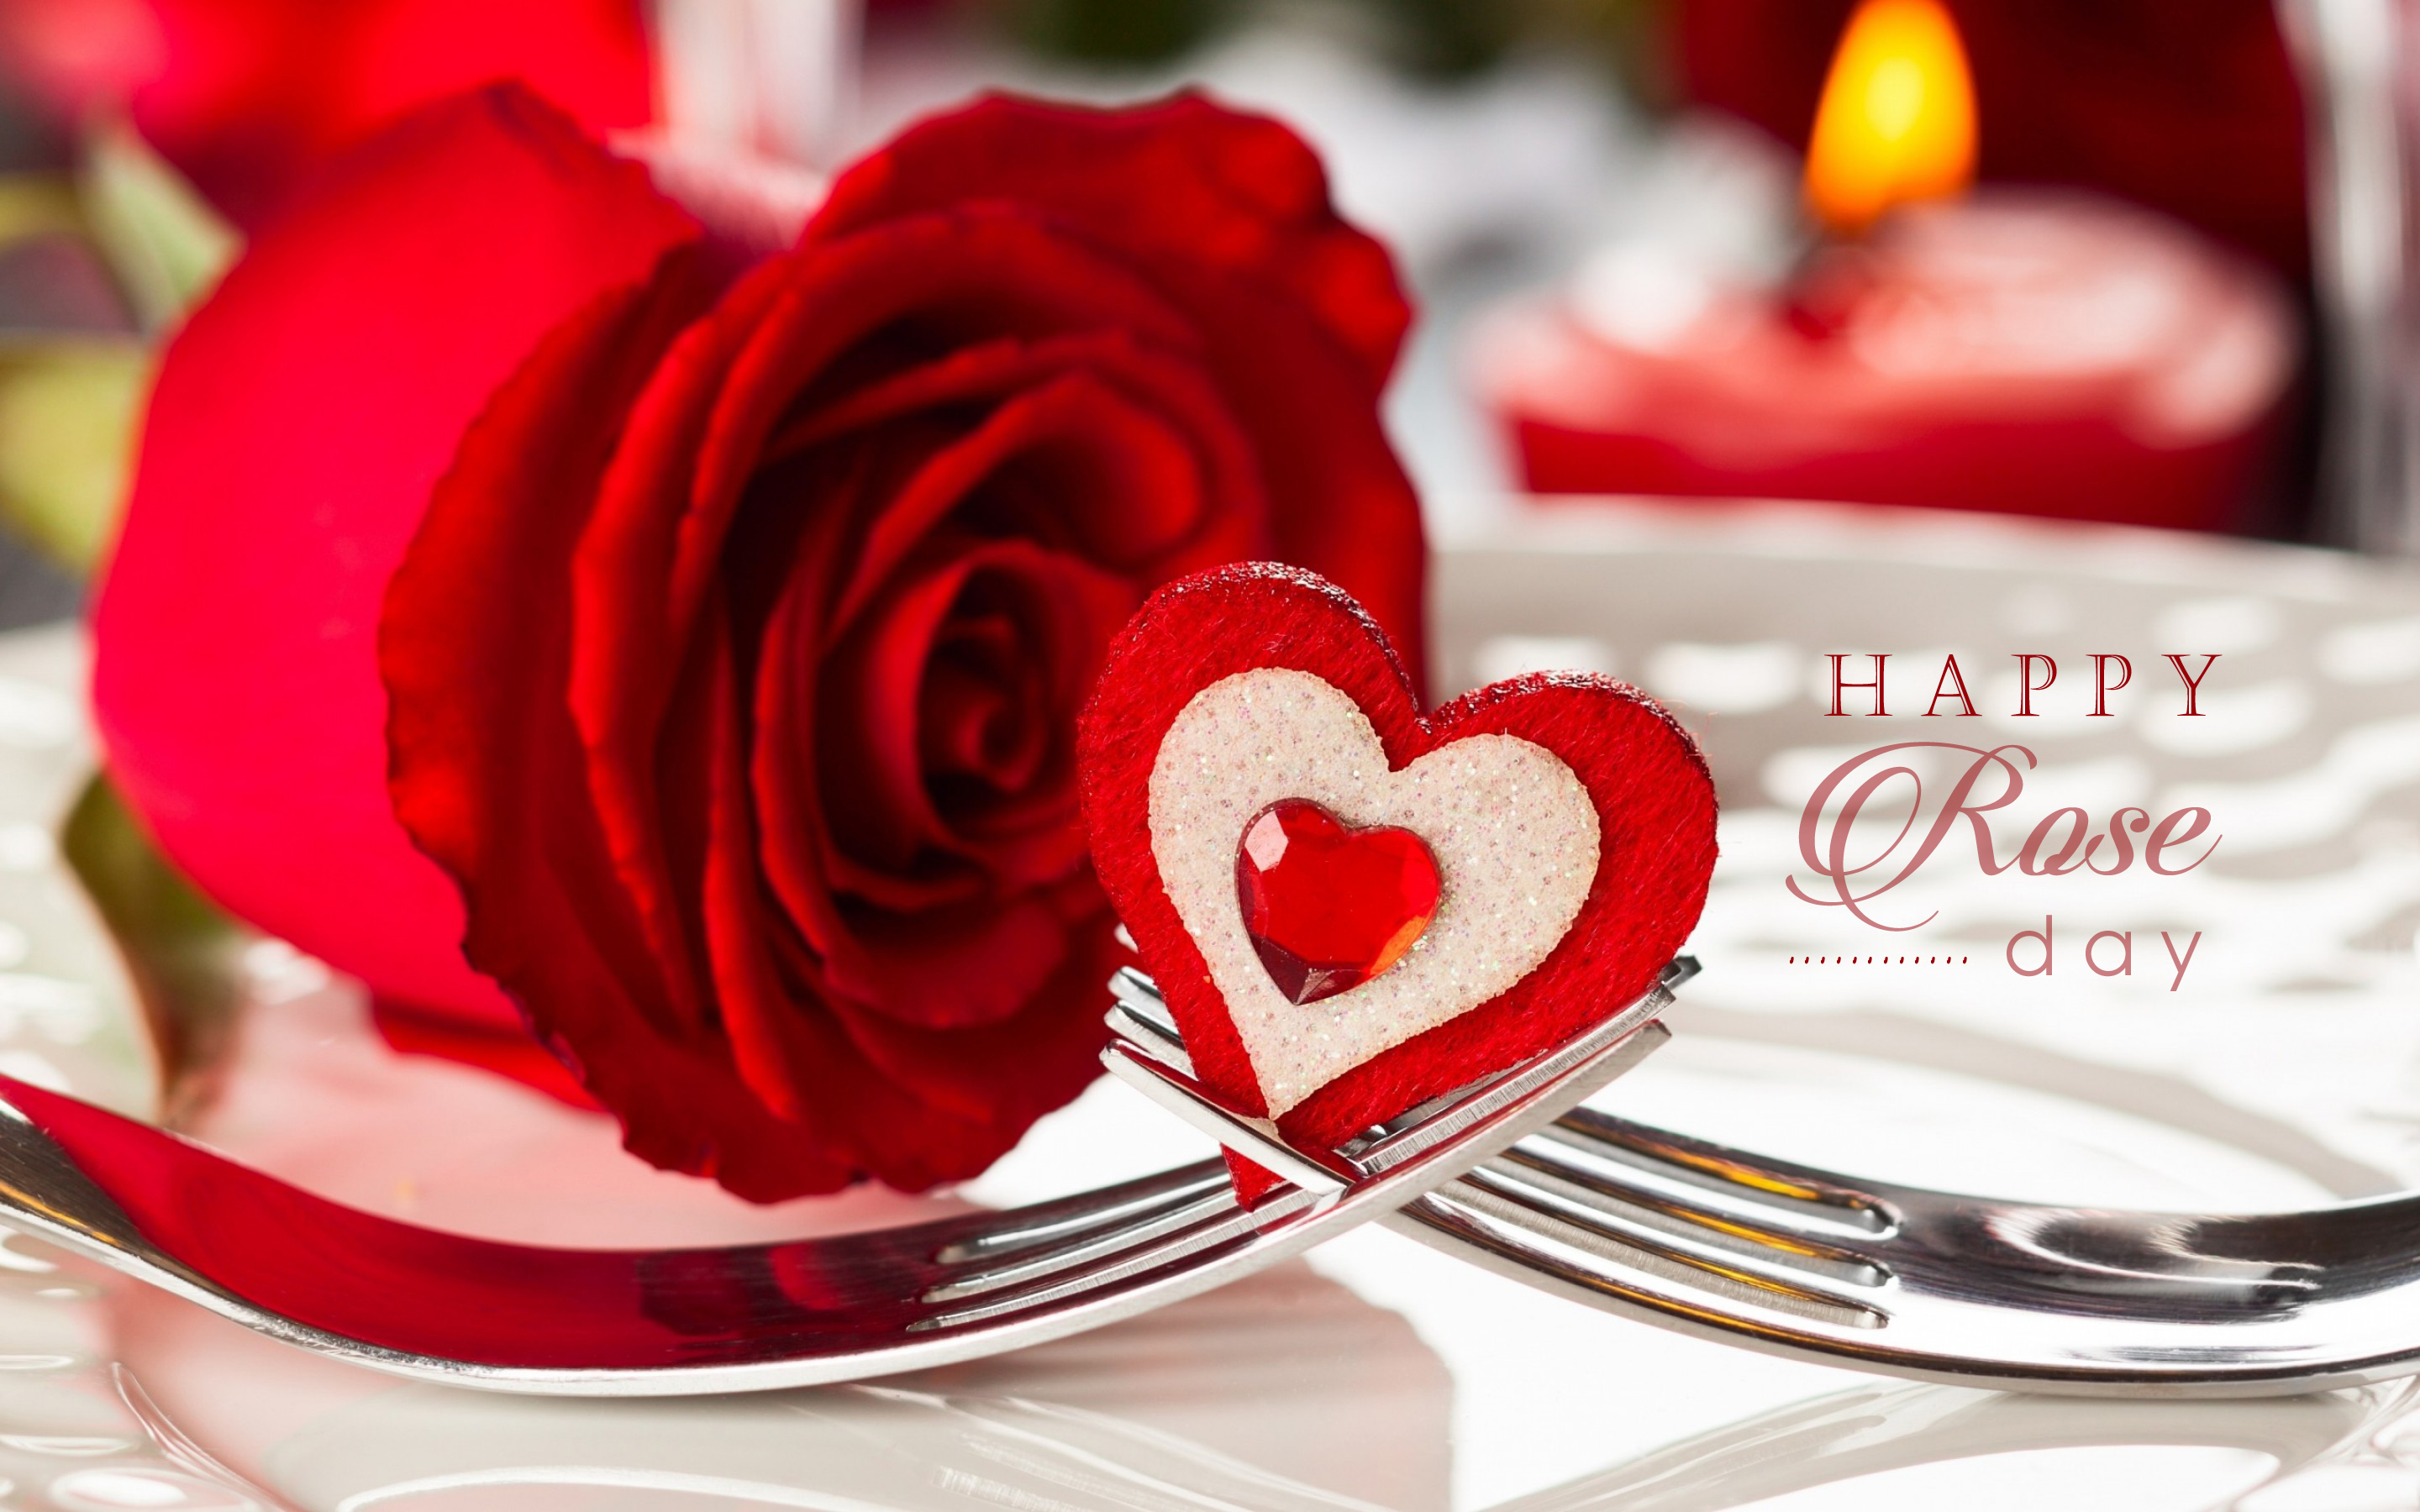 valentine's day romantic red roses hd wallpapers free